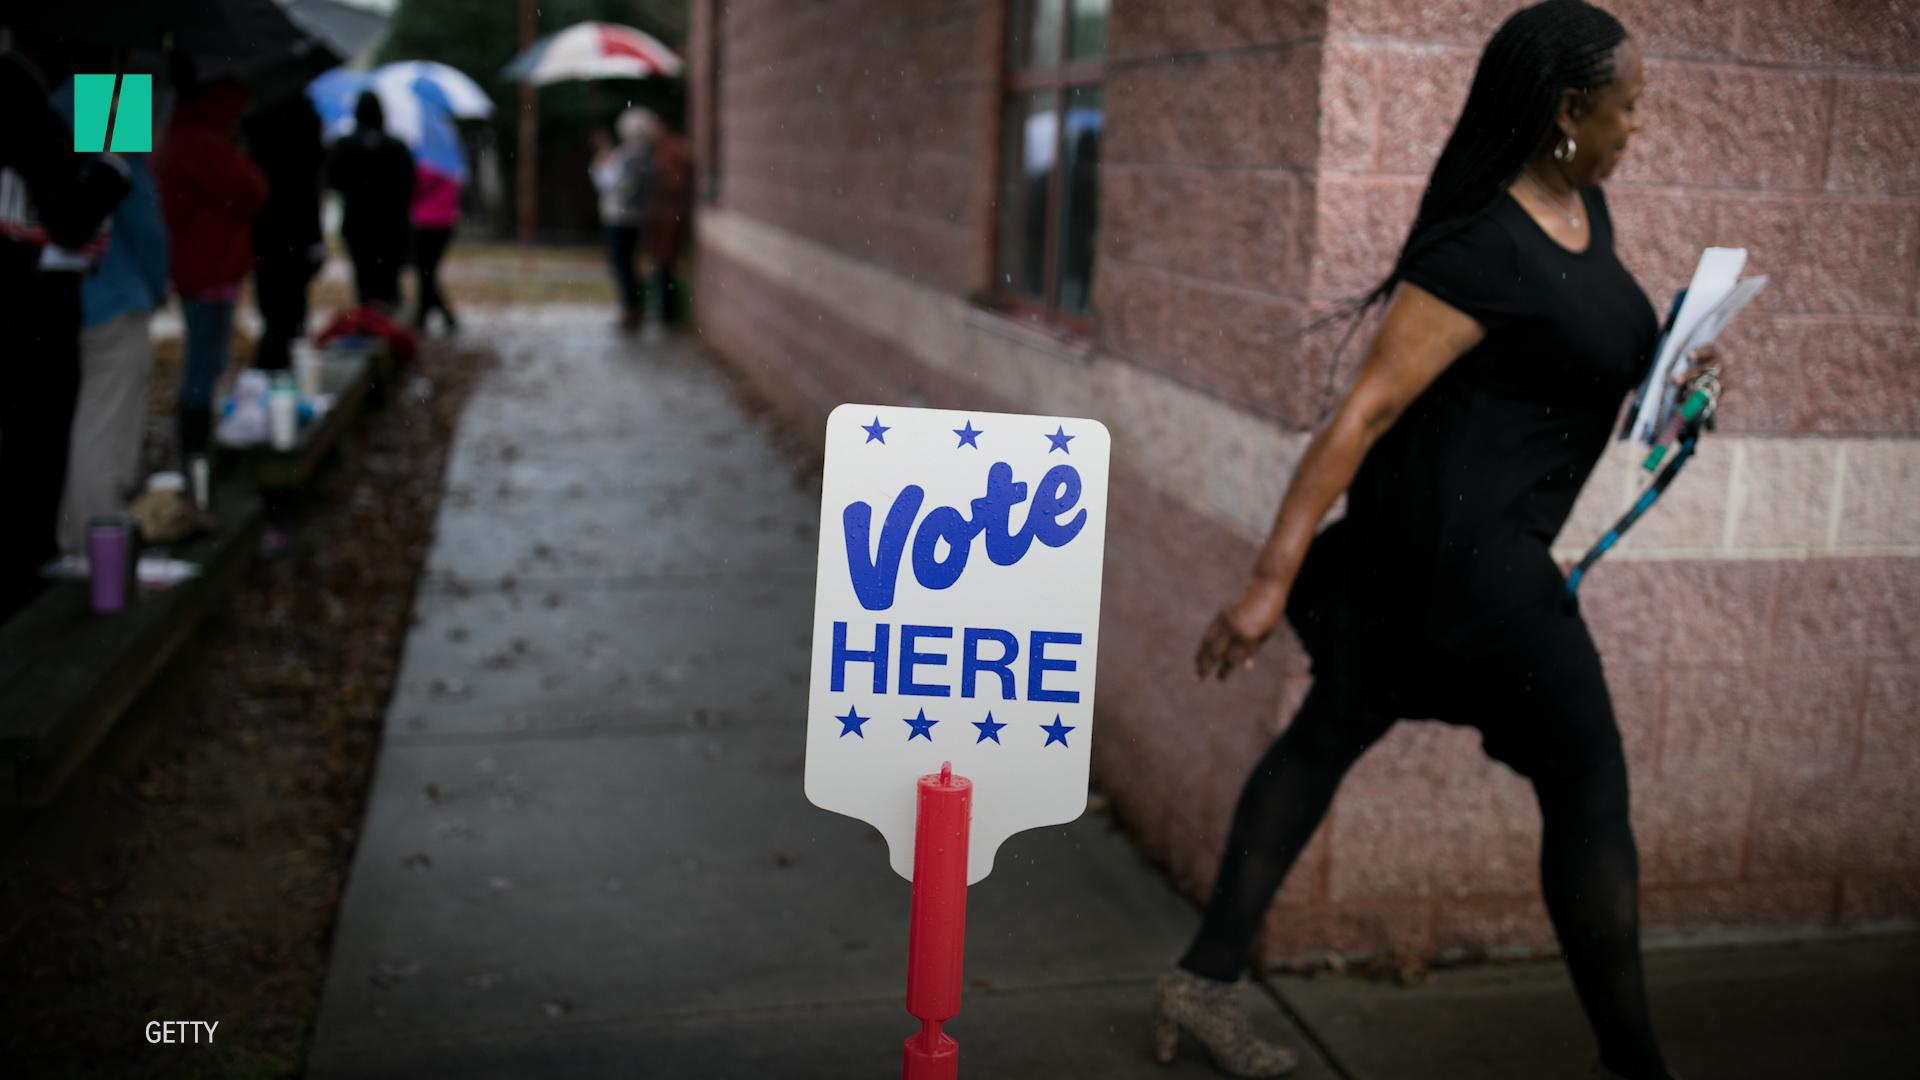 North Carolina Election Fraud Is A Crime. So Treat It That Way.